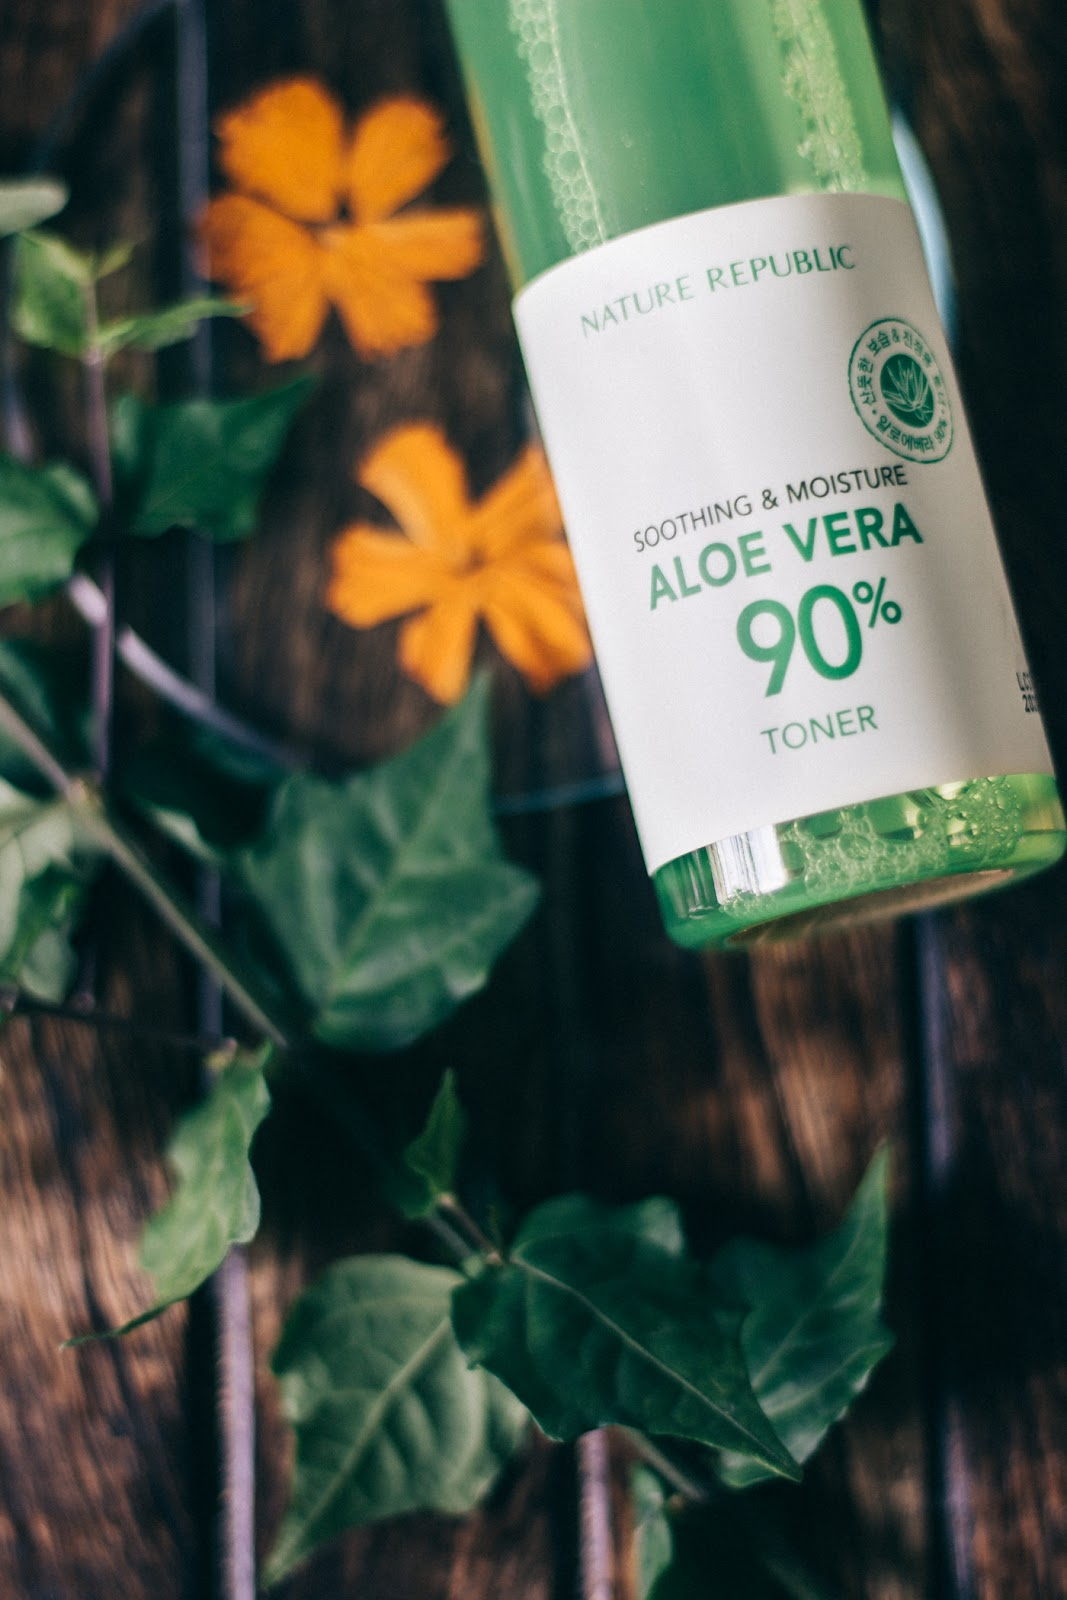 nature-republic-soothing-moisture-aloe-vera-90-review-korean-beauty